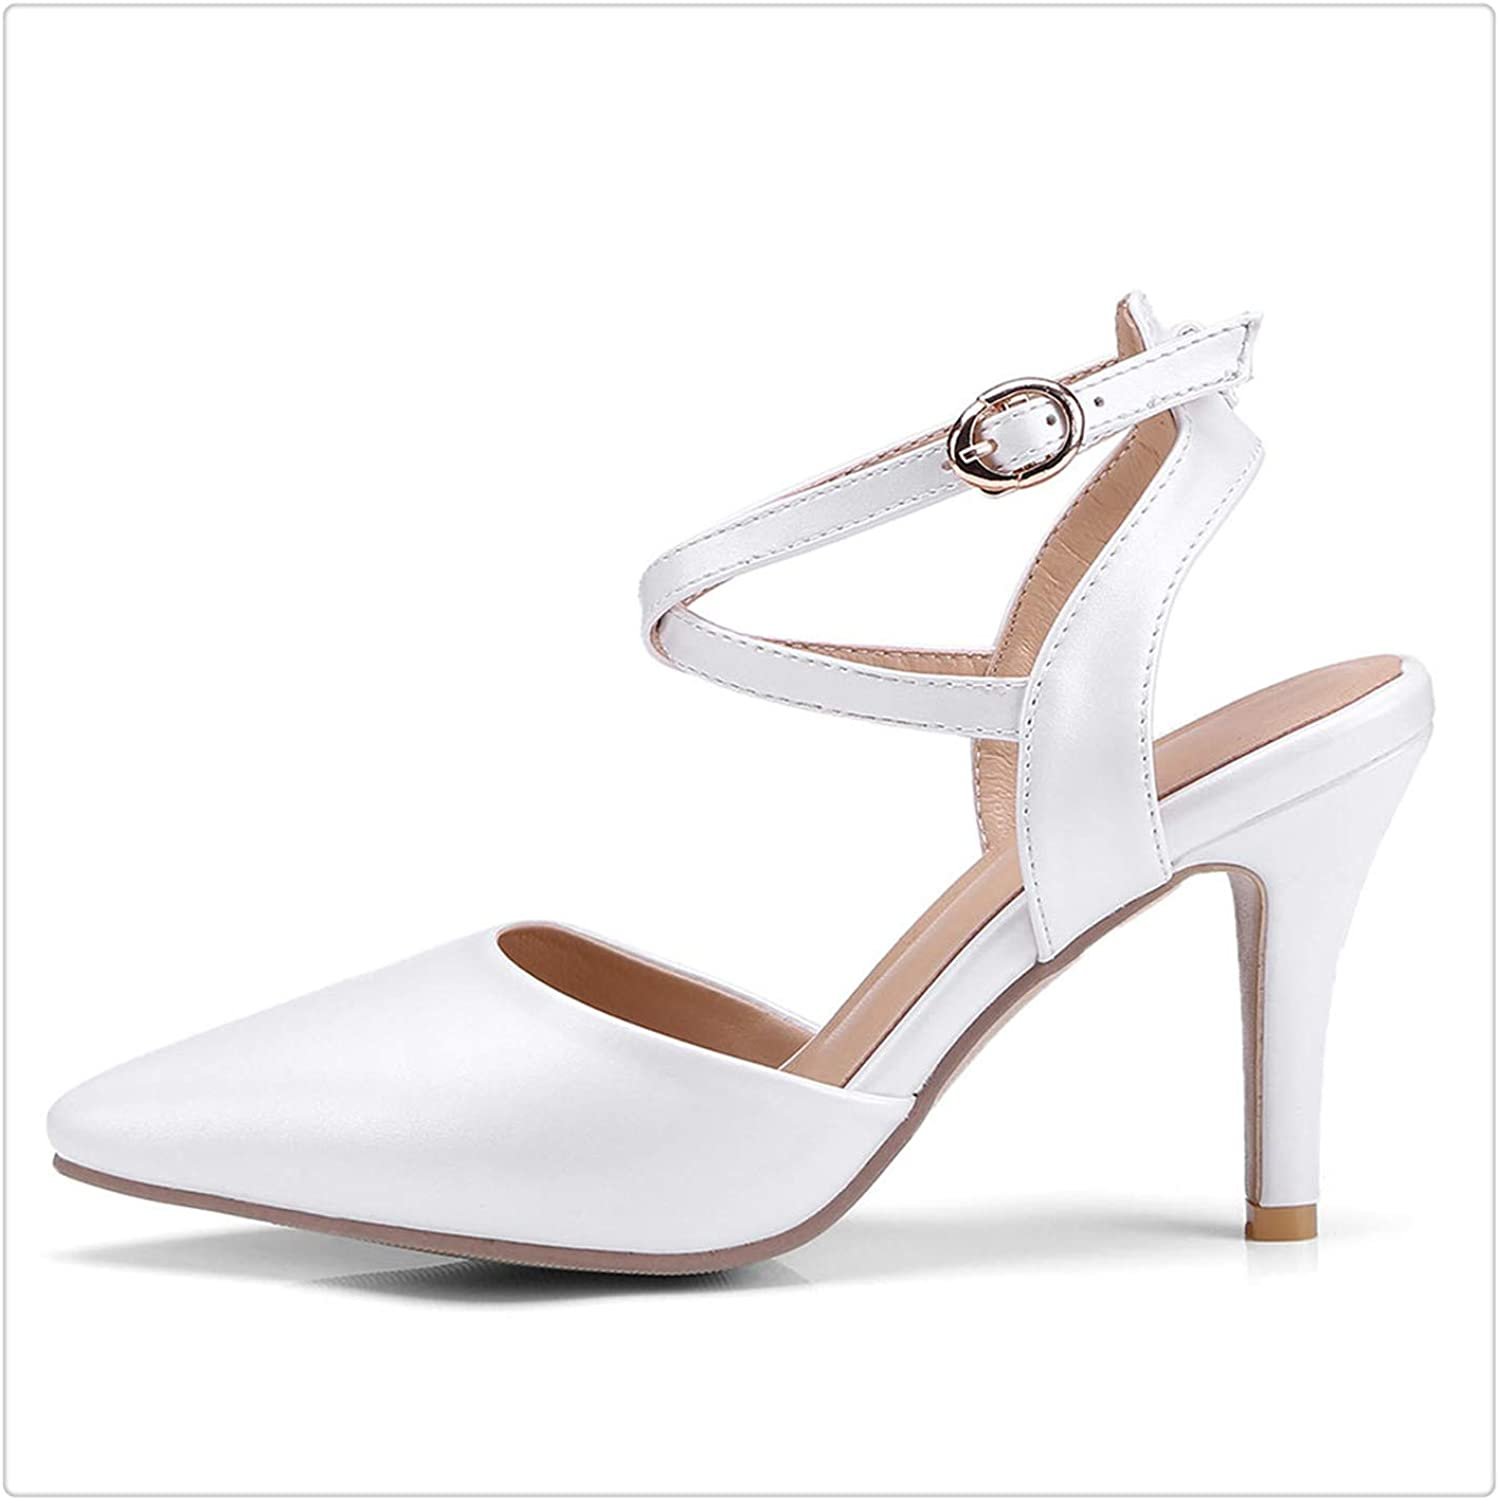 HROST& Summer Women Buckle Sandals Woman Sexy Thin High Heels Cross Tied Ankle Strap Pointed Toe Femme Party shoes Ladies Pumps White 9